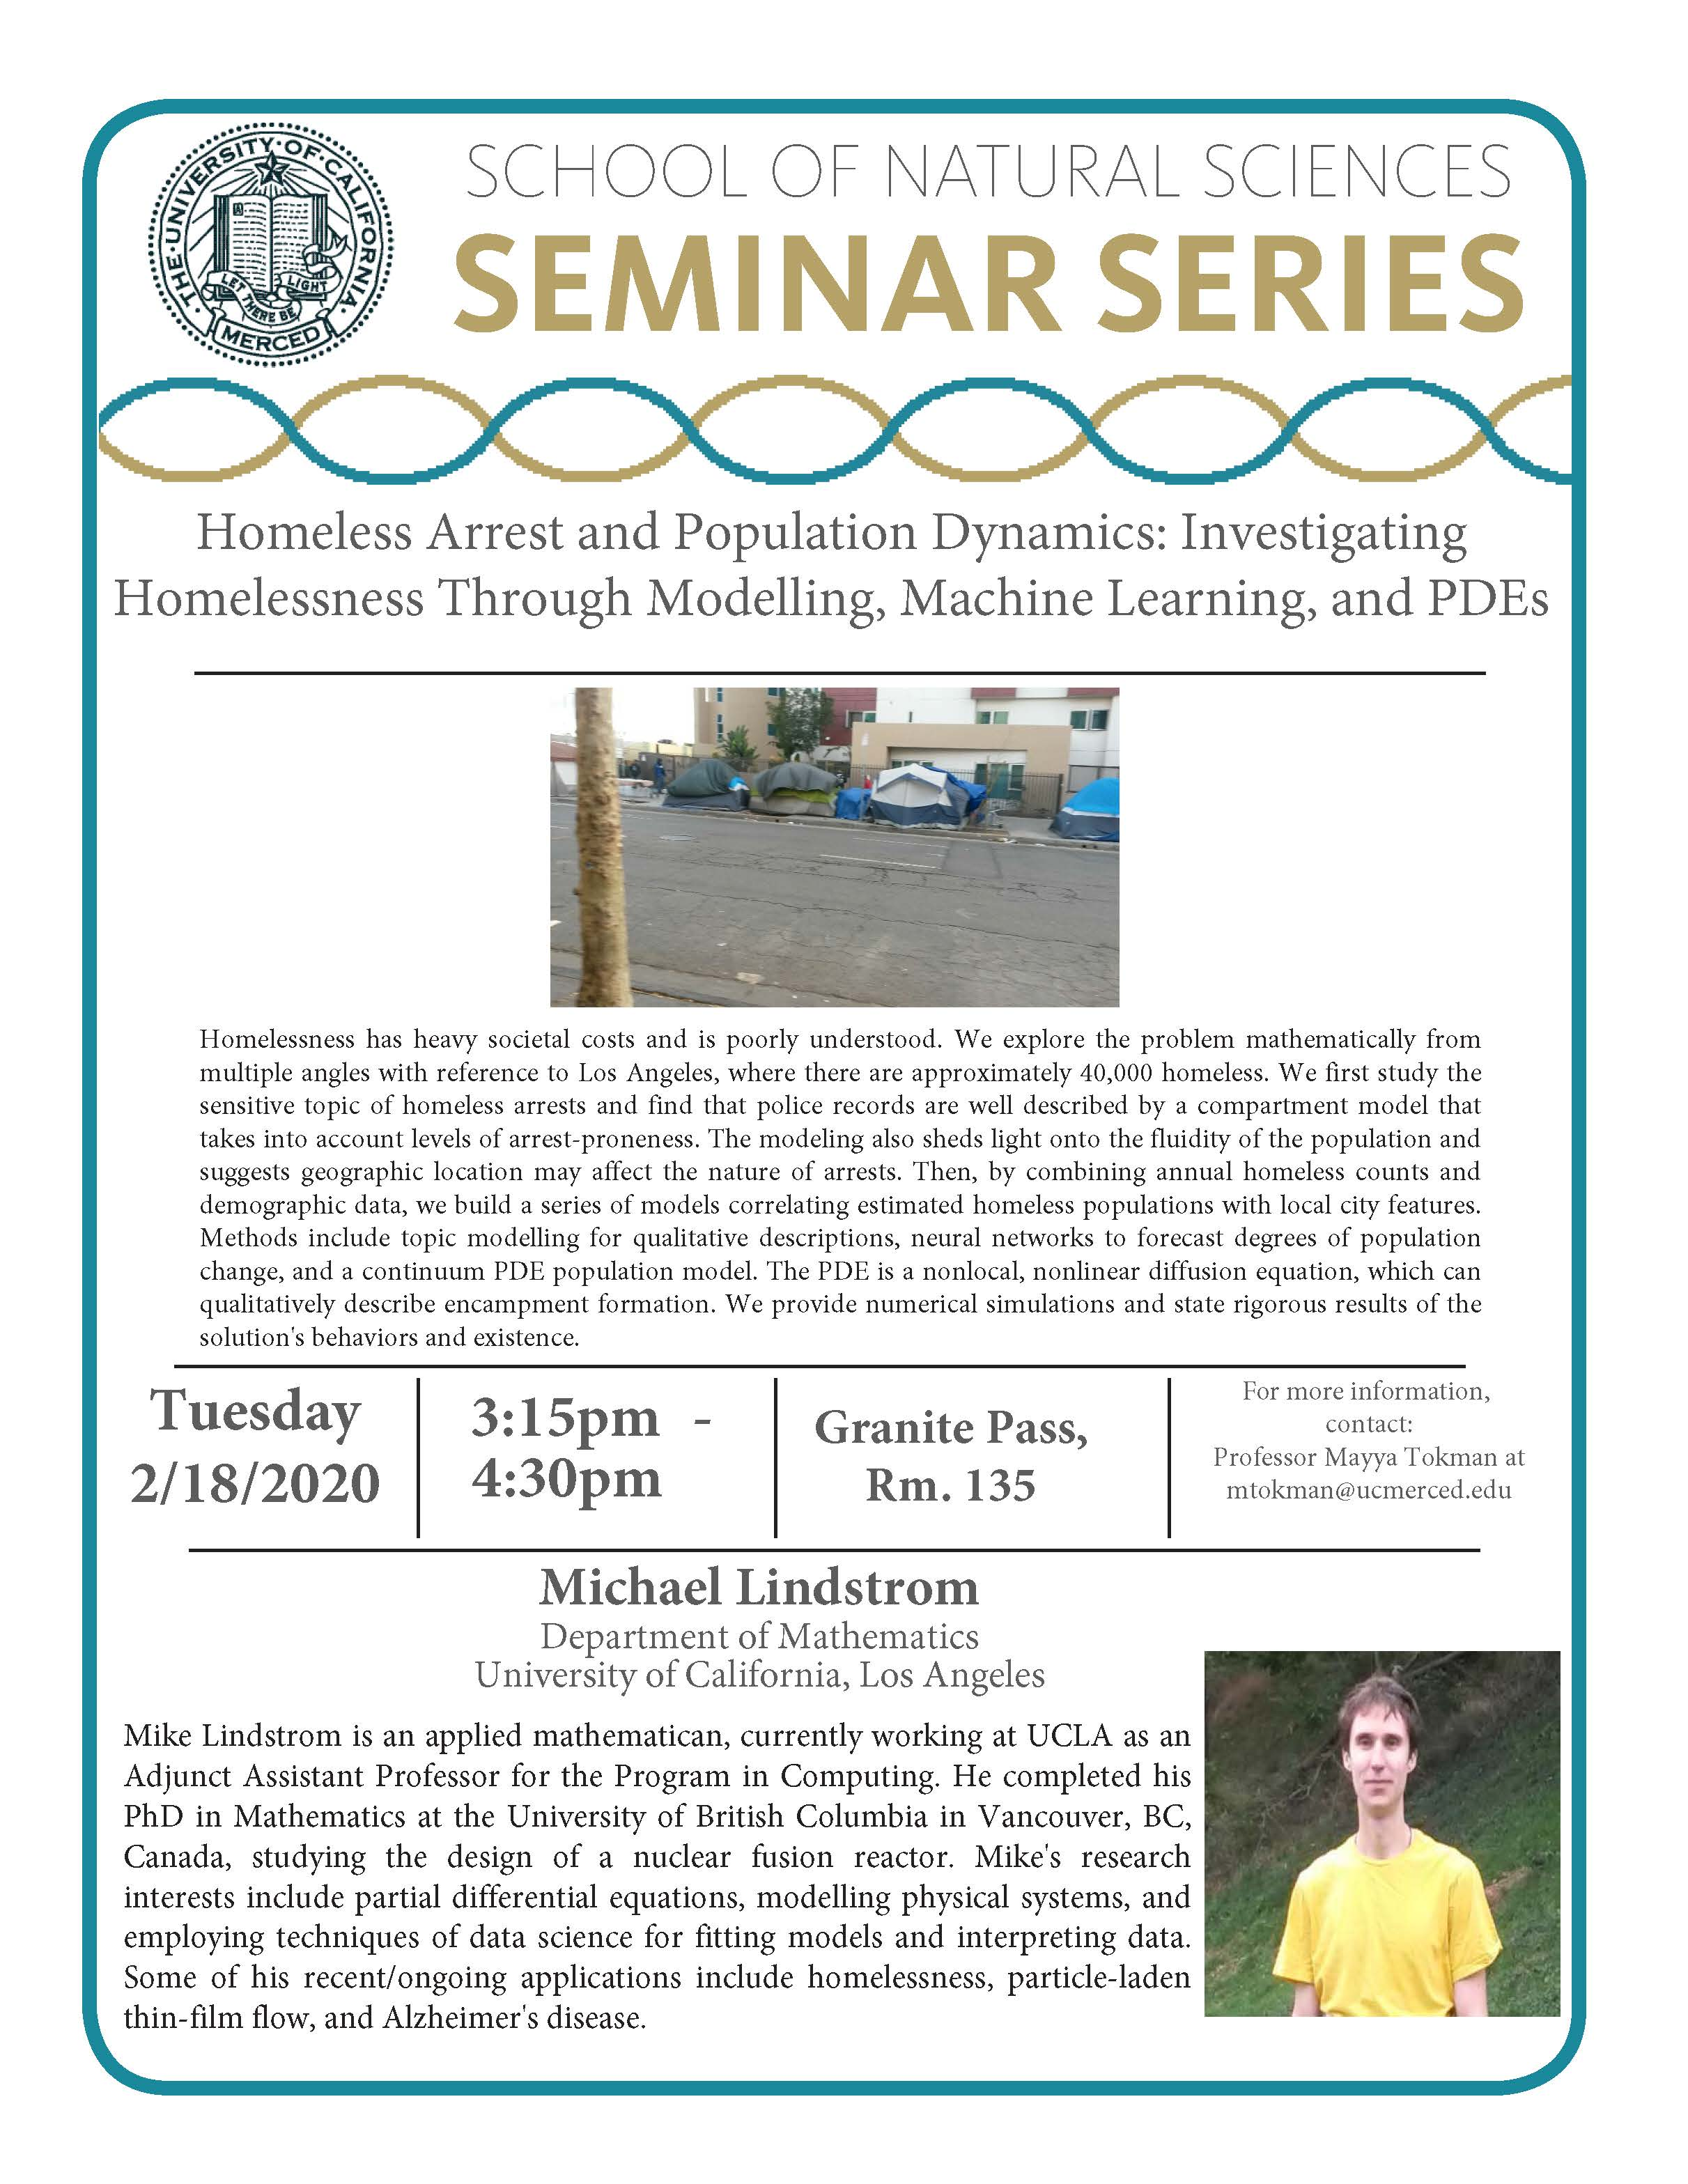 Applied Math Seminar for Dr. Michael Lindstrom